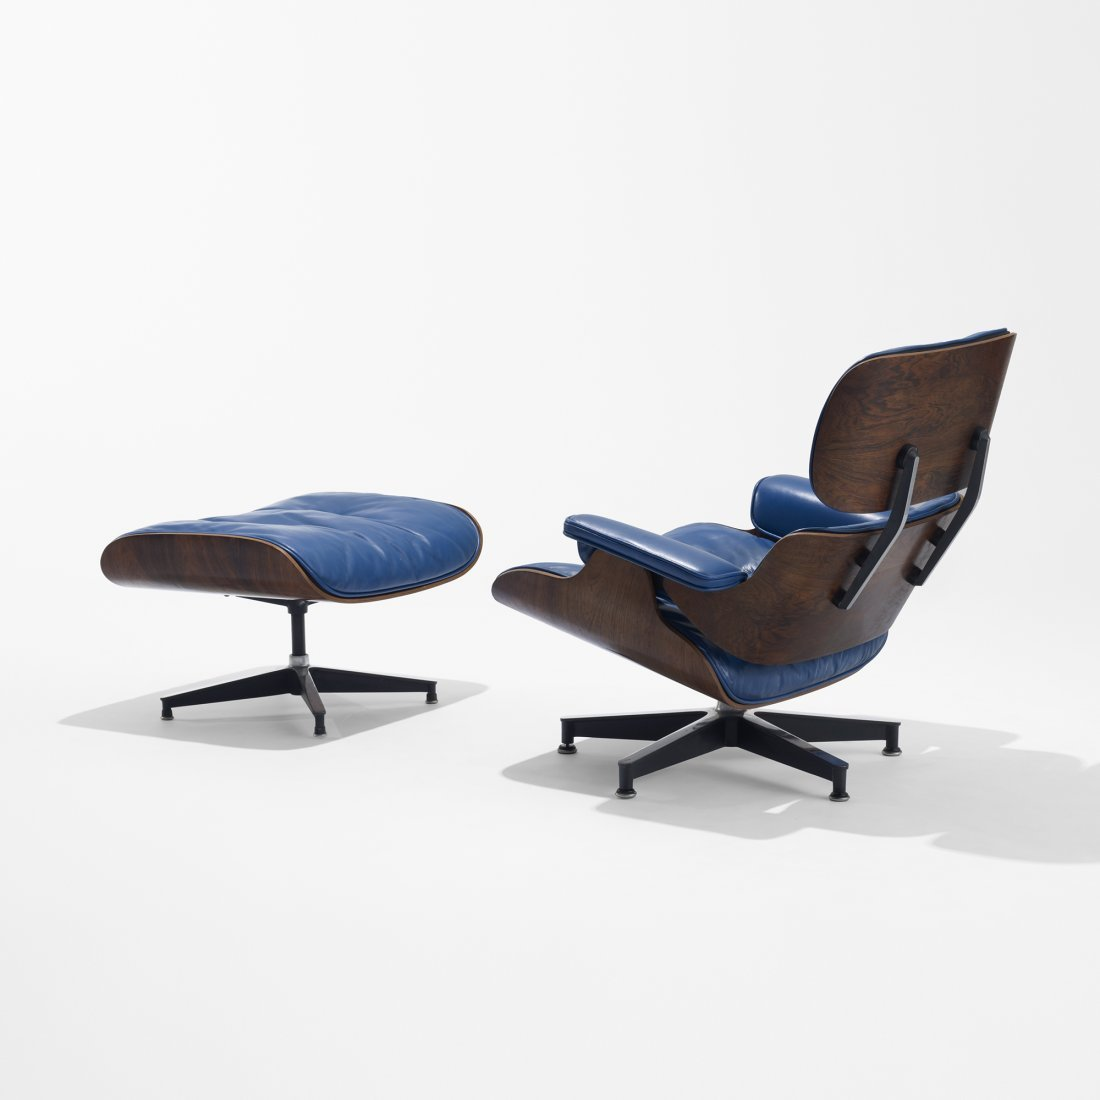 122: Eames special 670 lounge chair and 671 ottomon